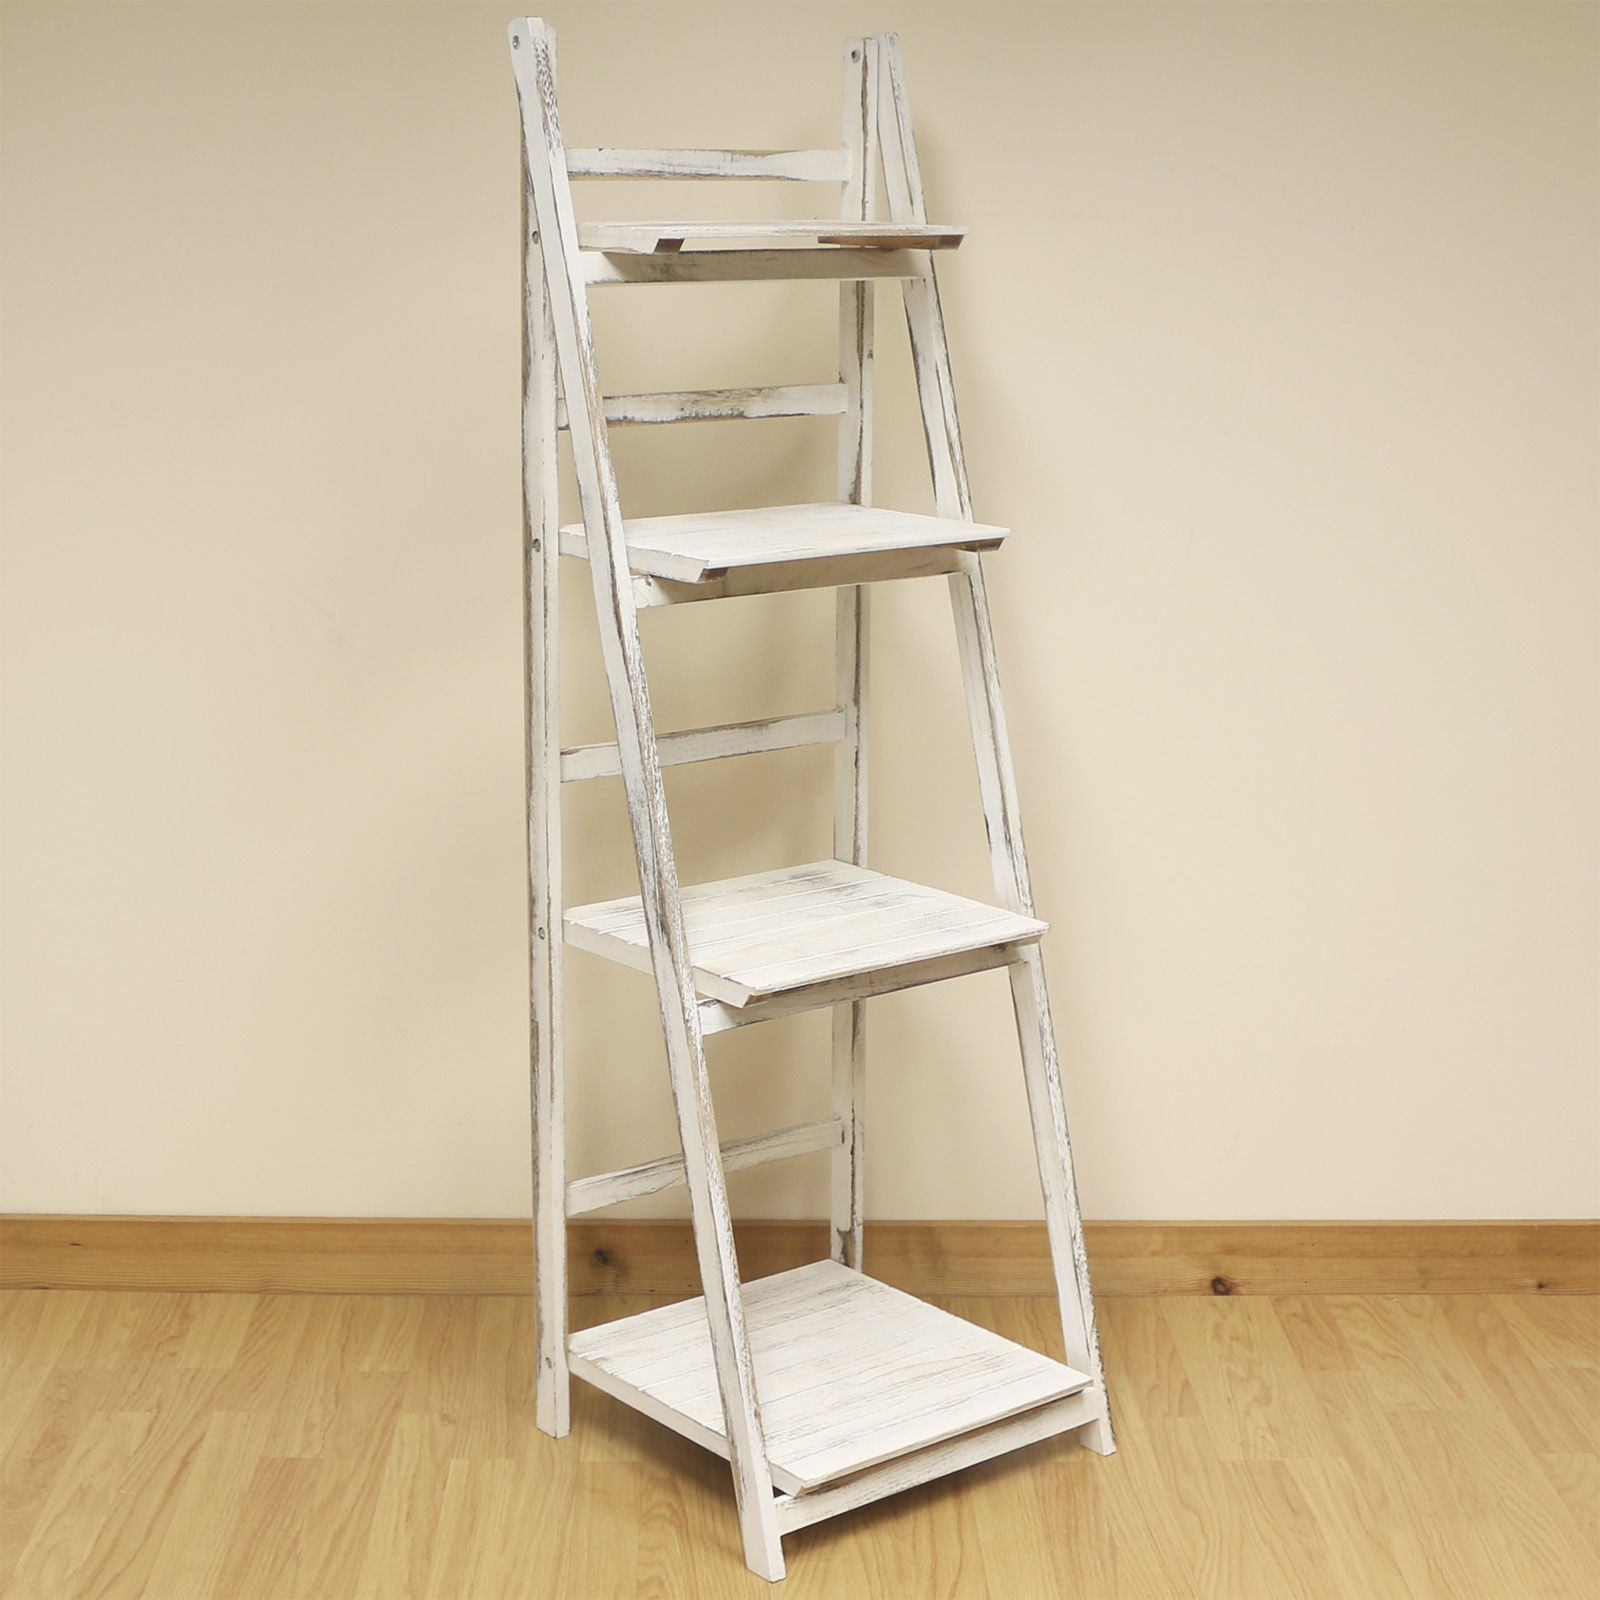 Details About 4 Tier White Wash Ladder Shelf Display Unit Free  Standing/folding Book Shelves